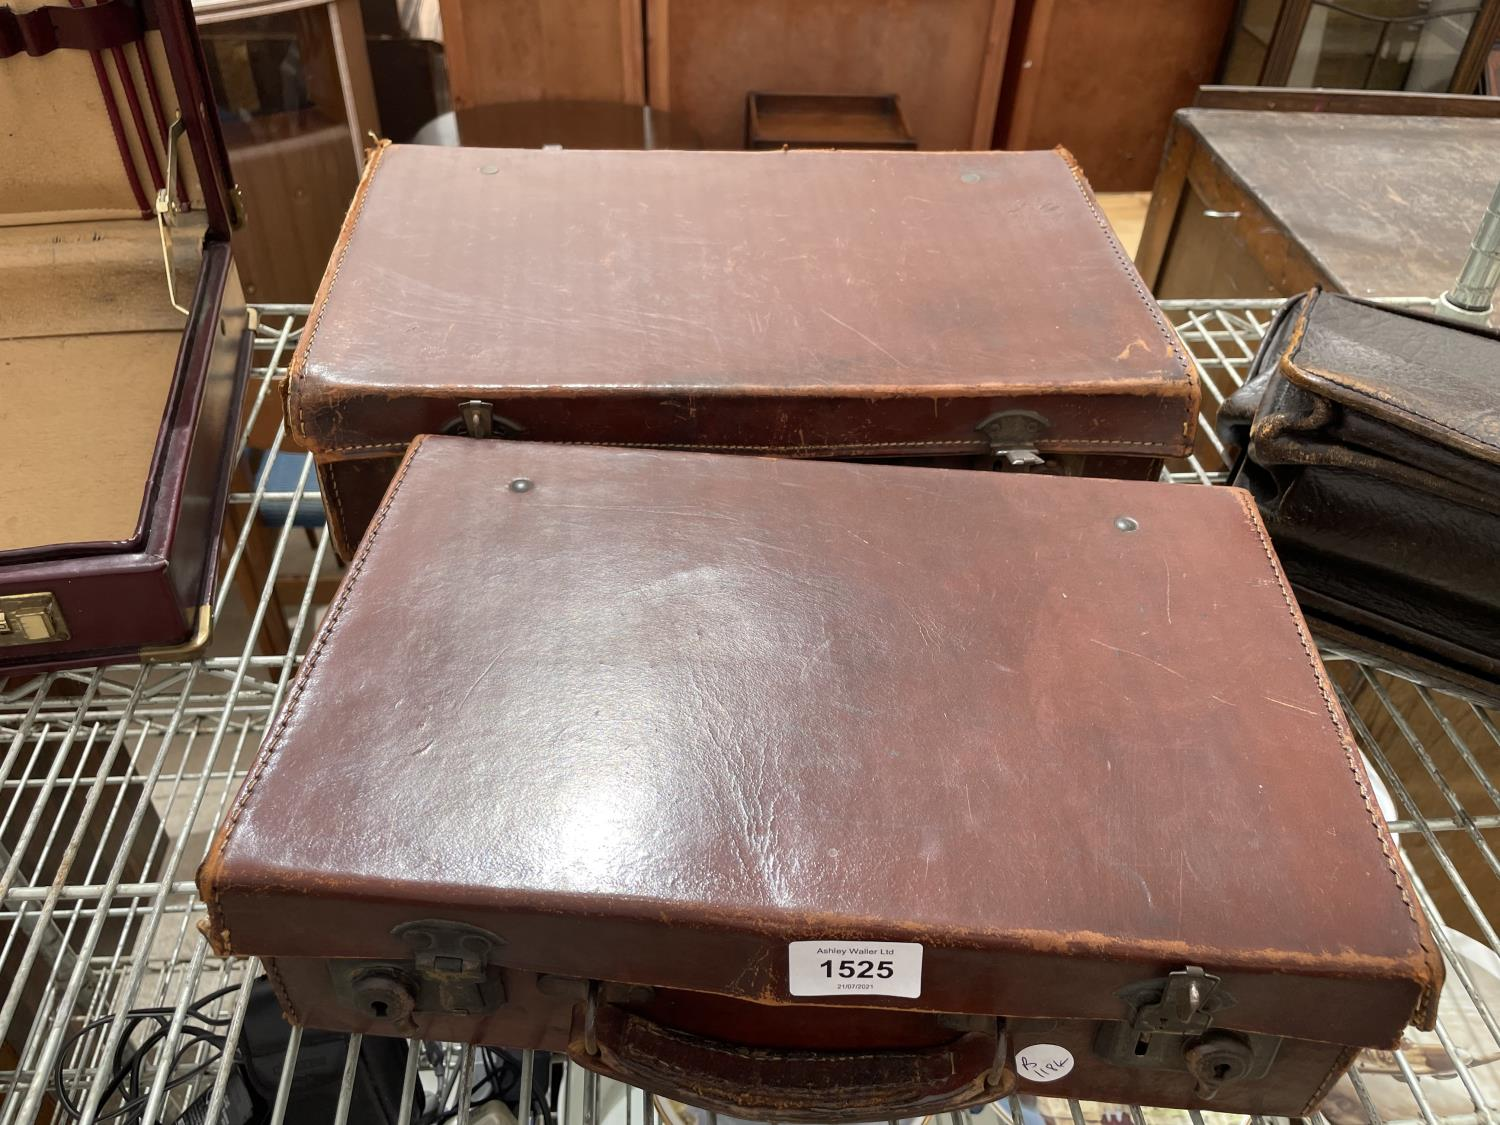 AN ASSORTMENT OF VINTAGE LEATHER TRAVEL CASES - Image 6 of 6